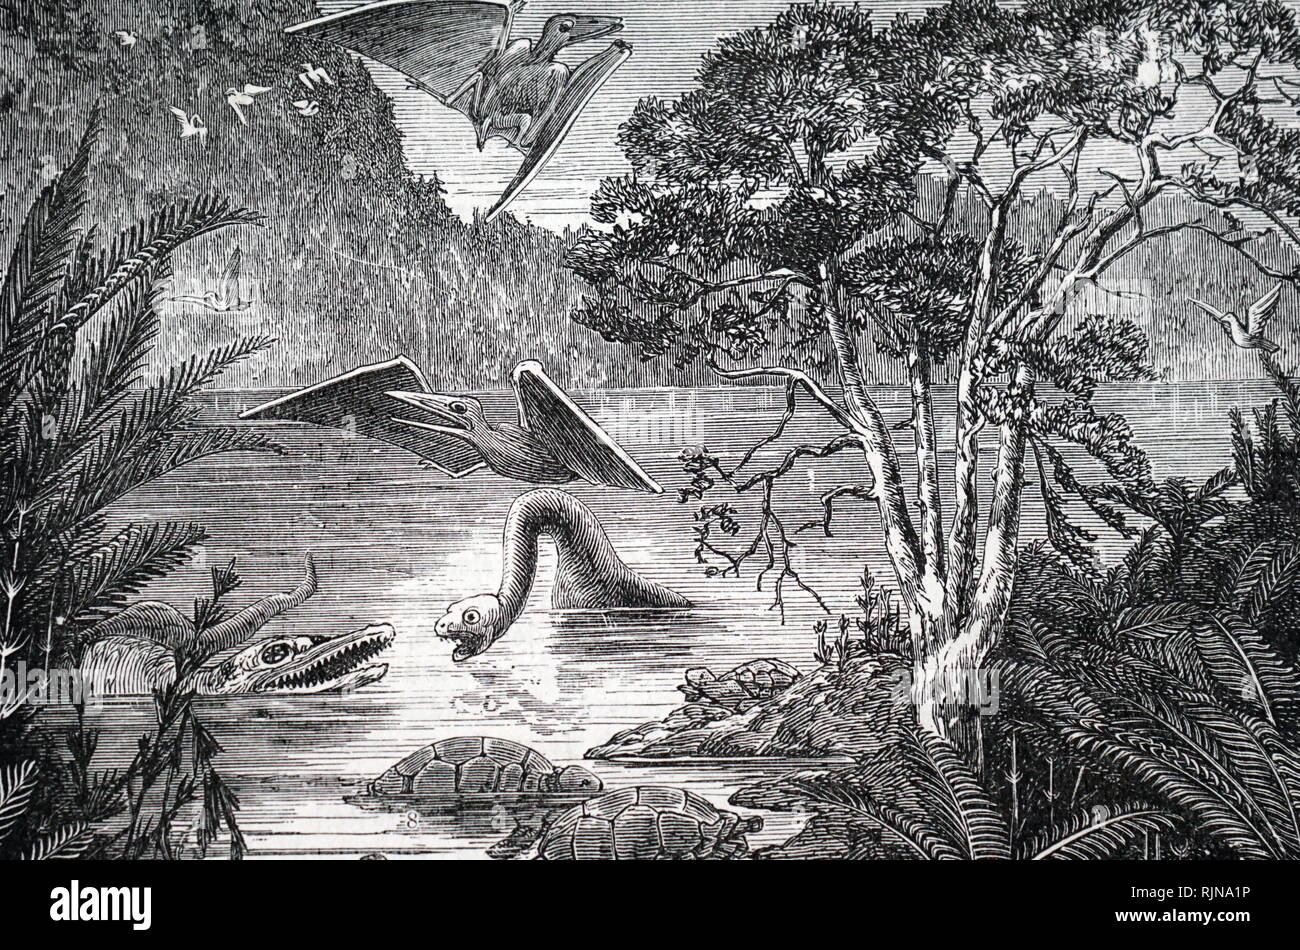 An engraving depicting the ideal flora and fauna of the Upper Cretaceous period. Dated 19th century - Stock Image